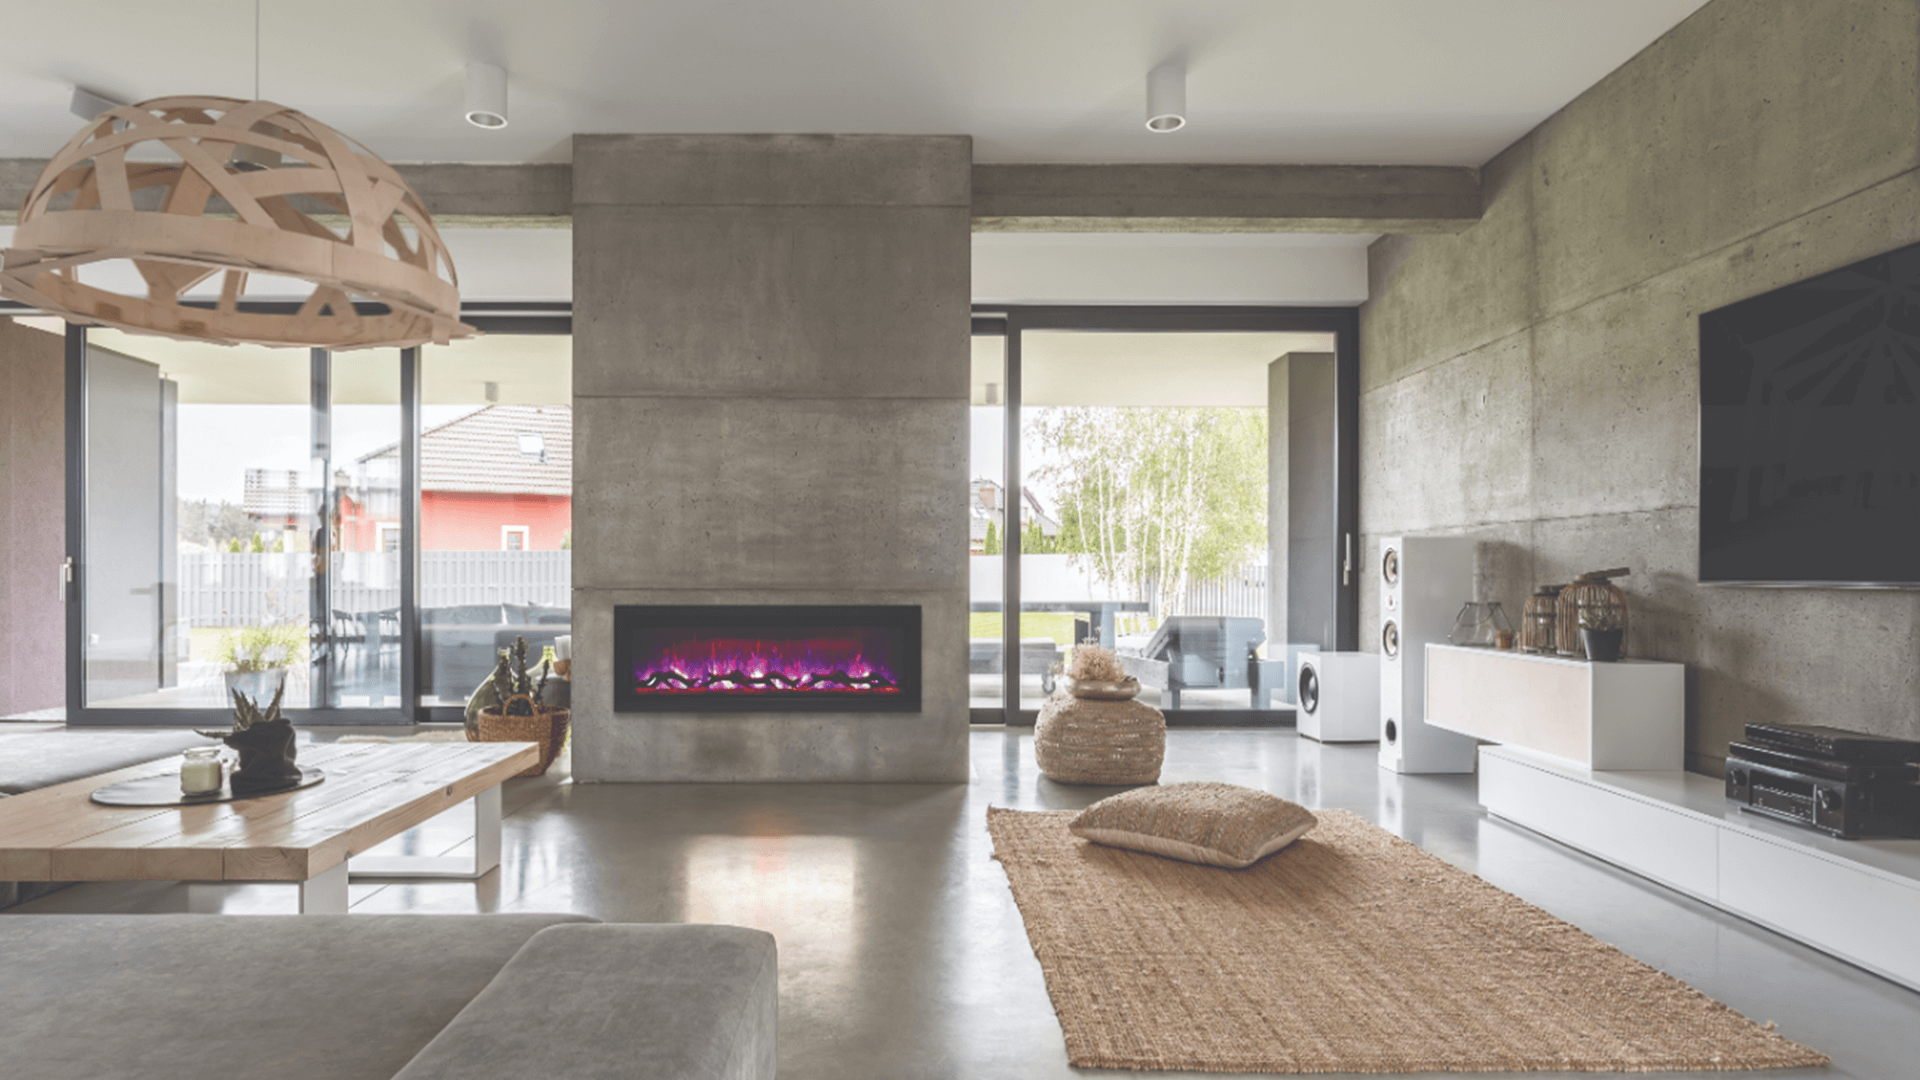 Electric Fireplace Store Luce S Chimney Amp Stove Shop